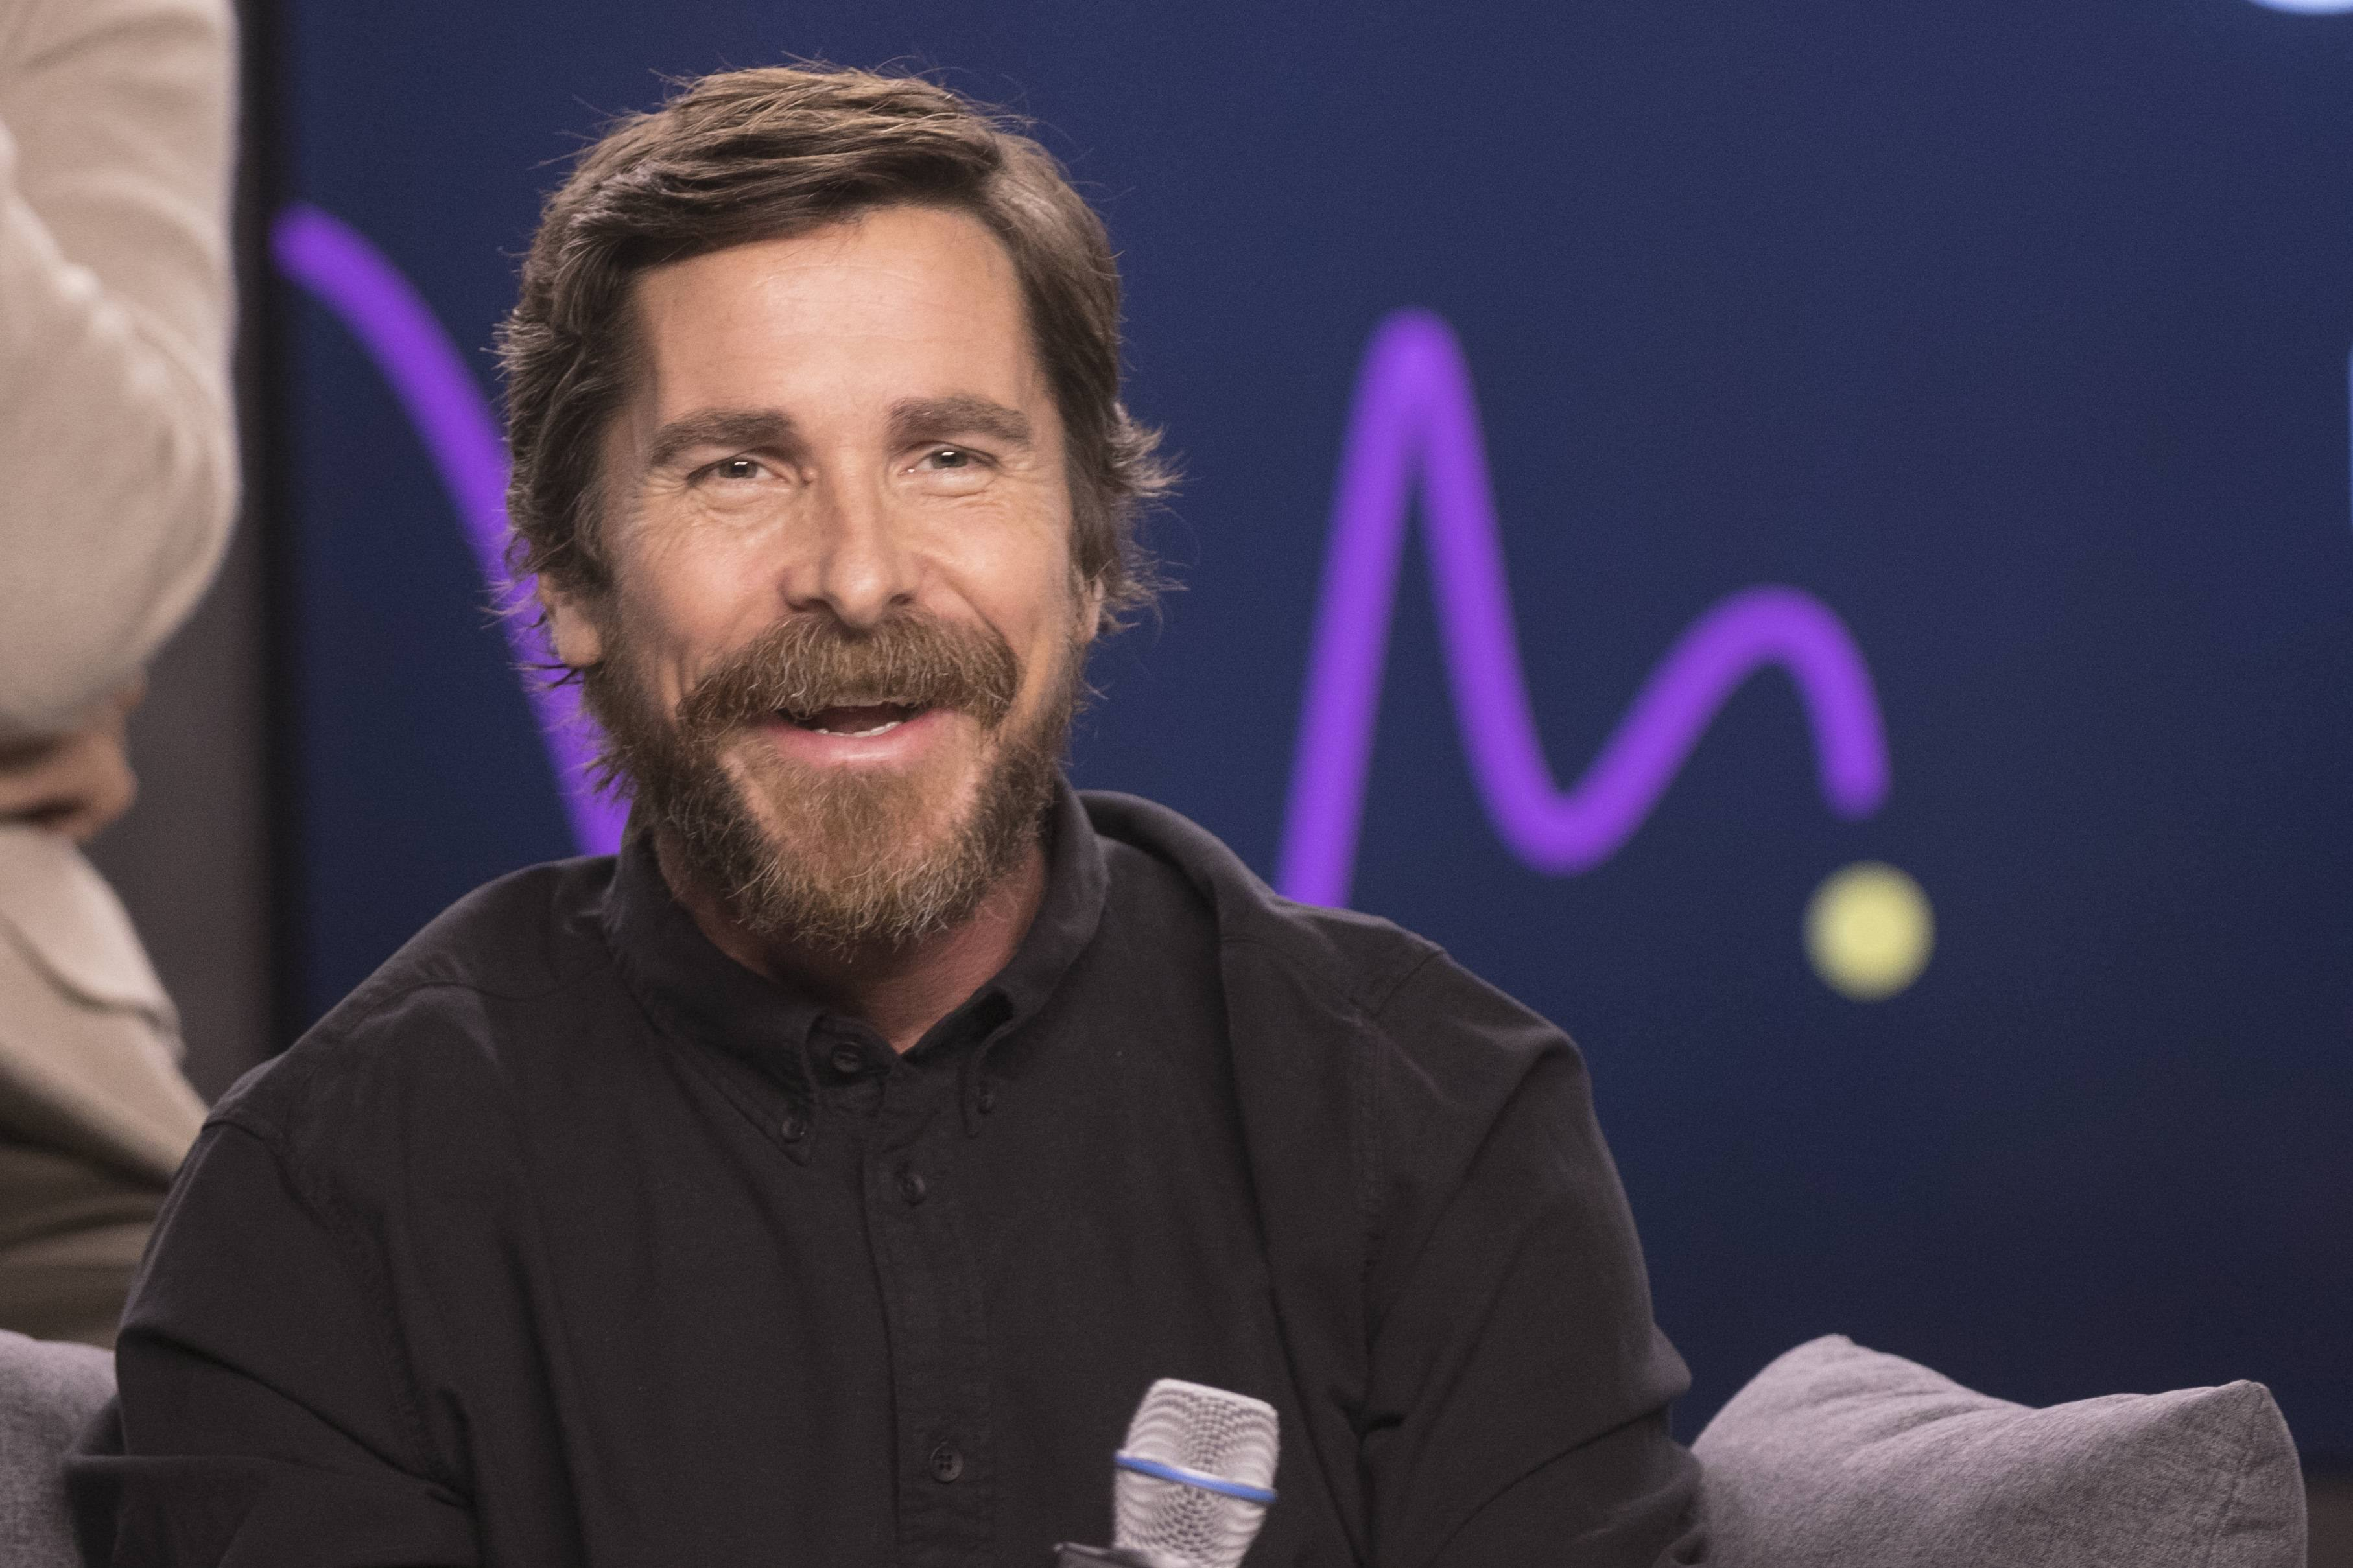 Christian Bale Confirmed As The New Villain In Thor 4